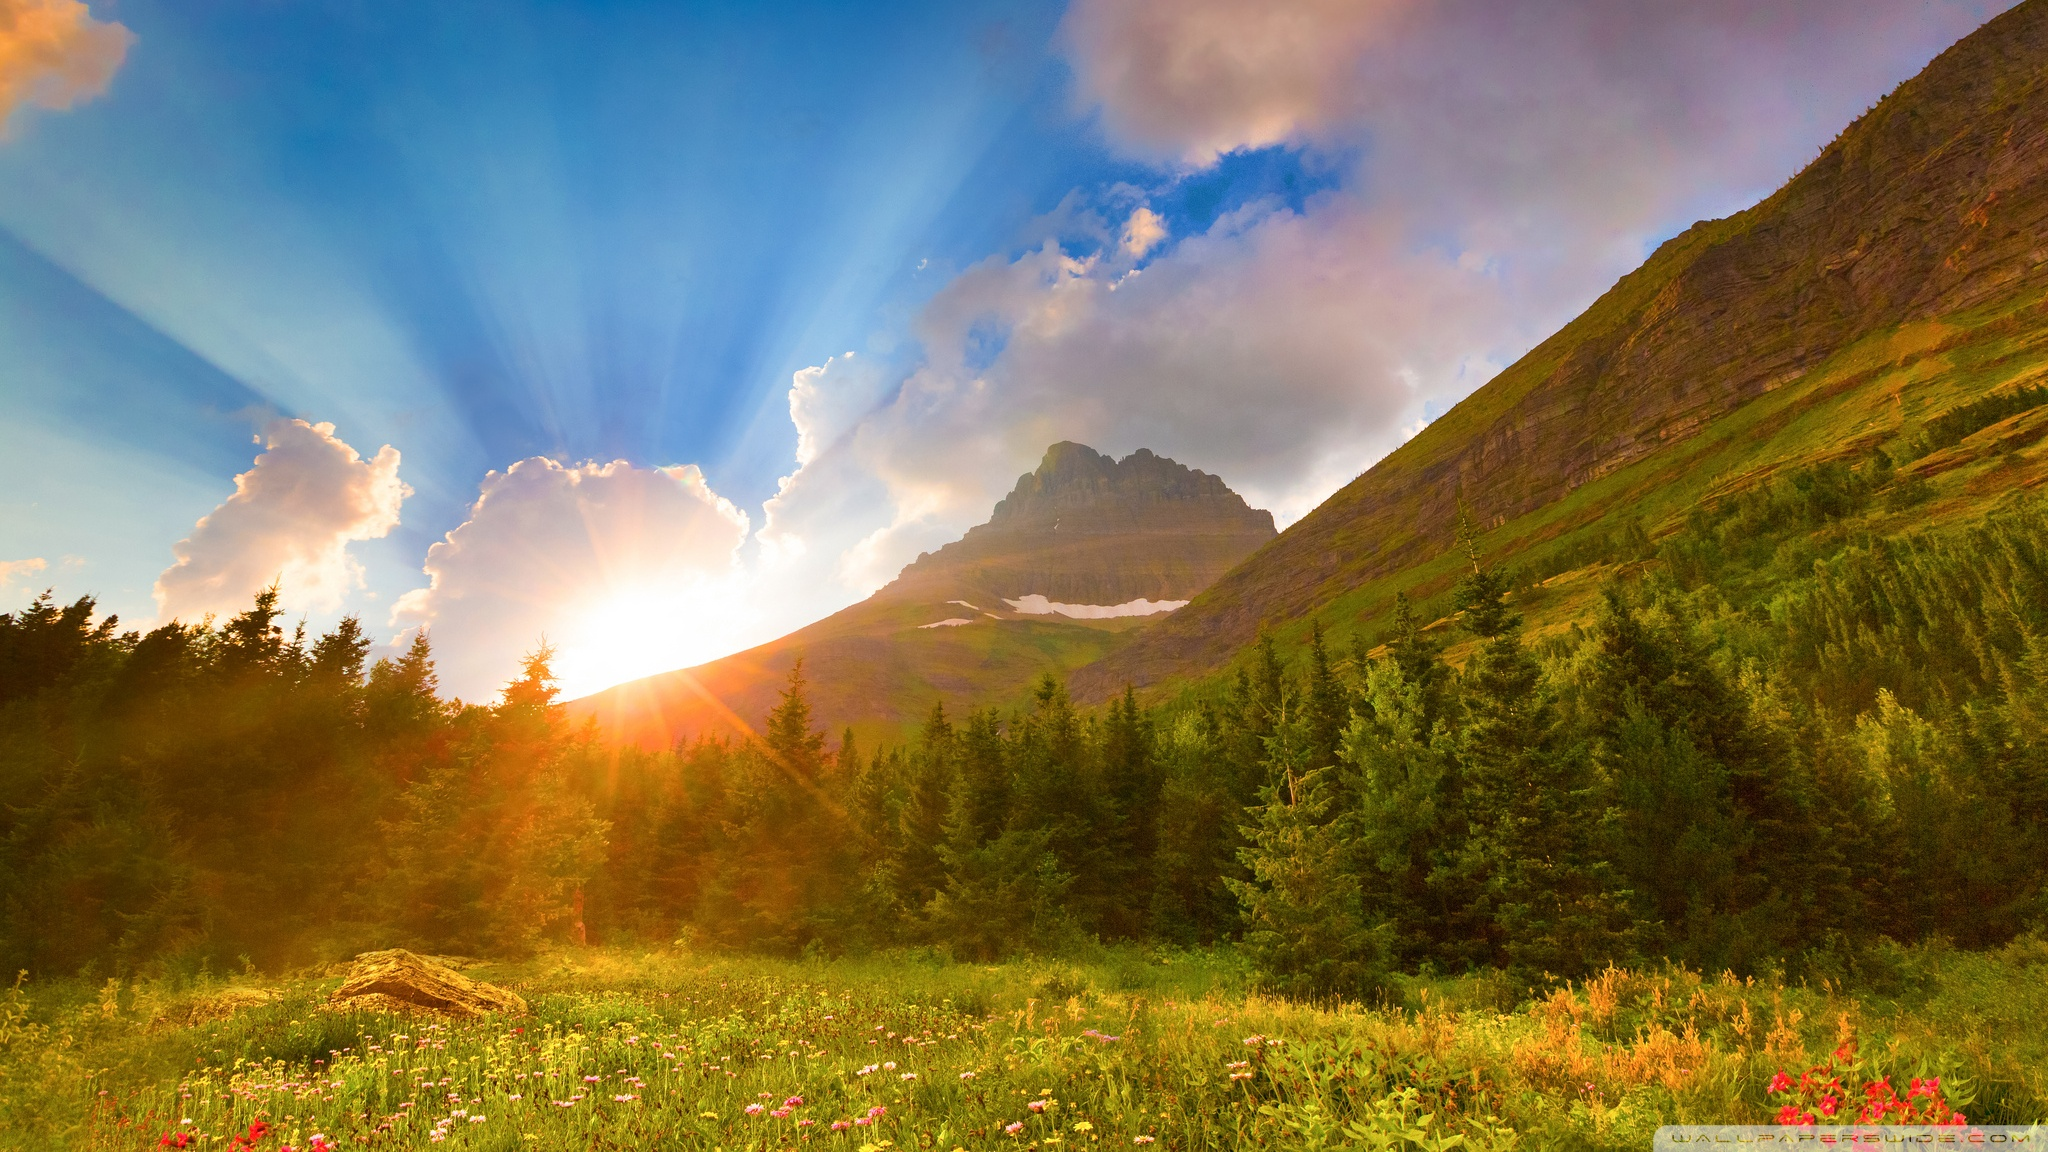 beautiful mountains sunrise wallpaper - photo #23